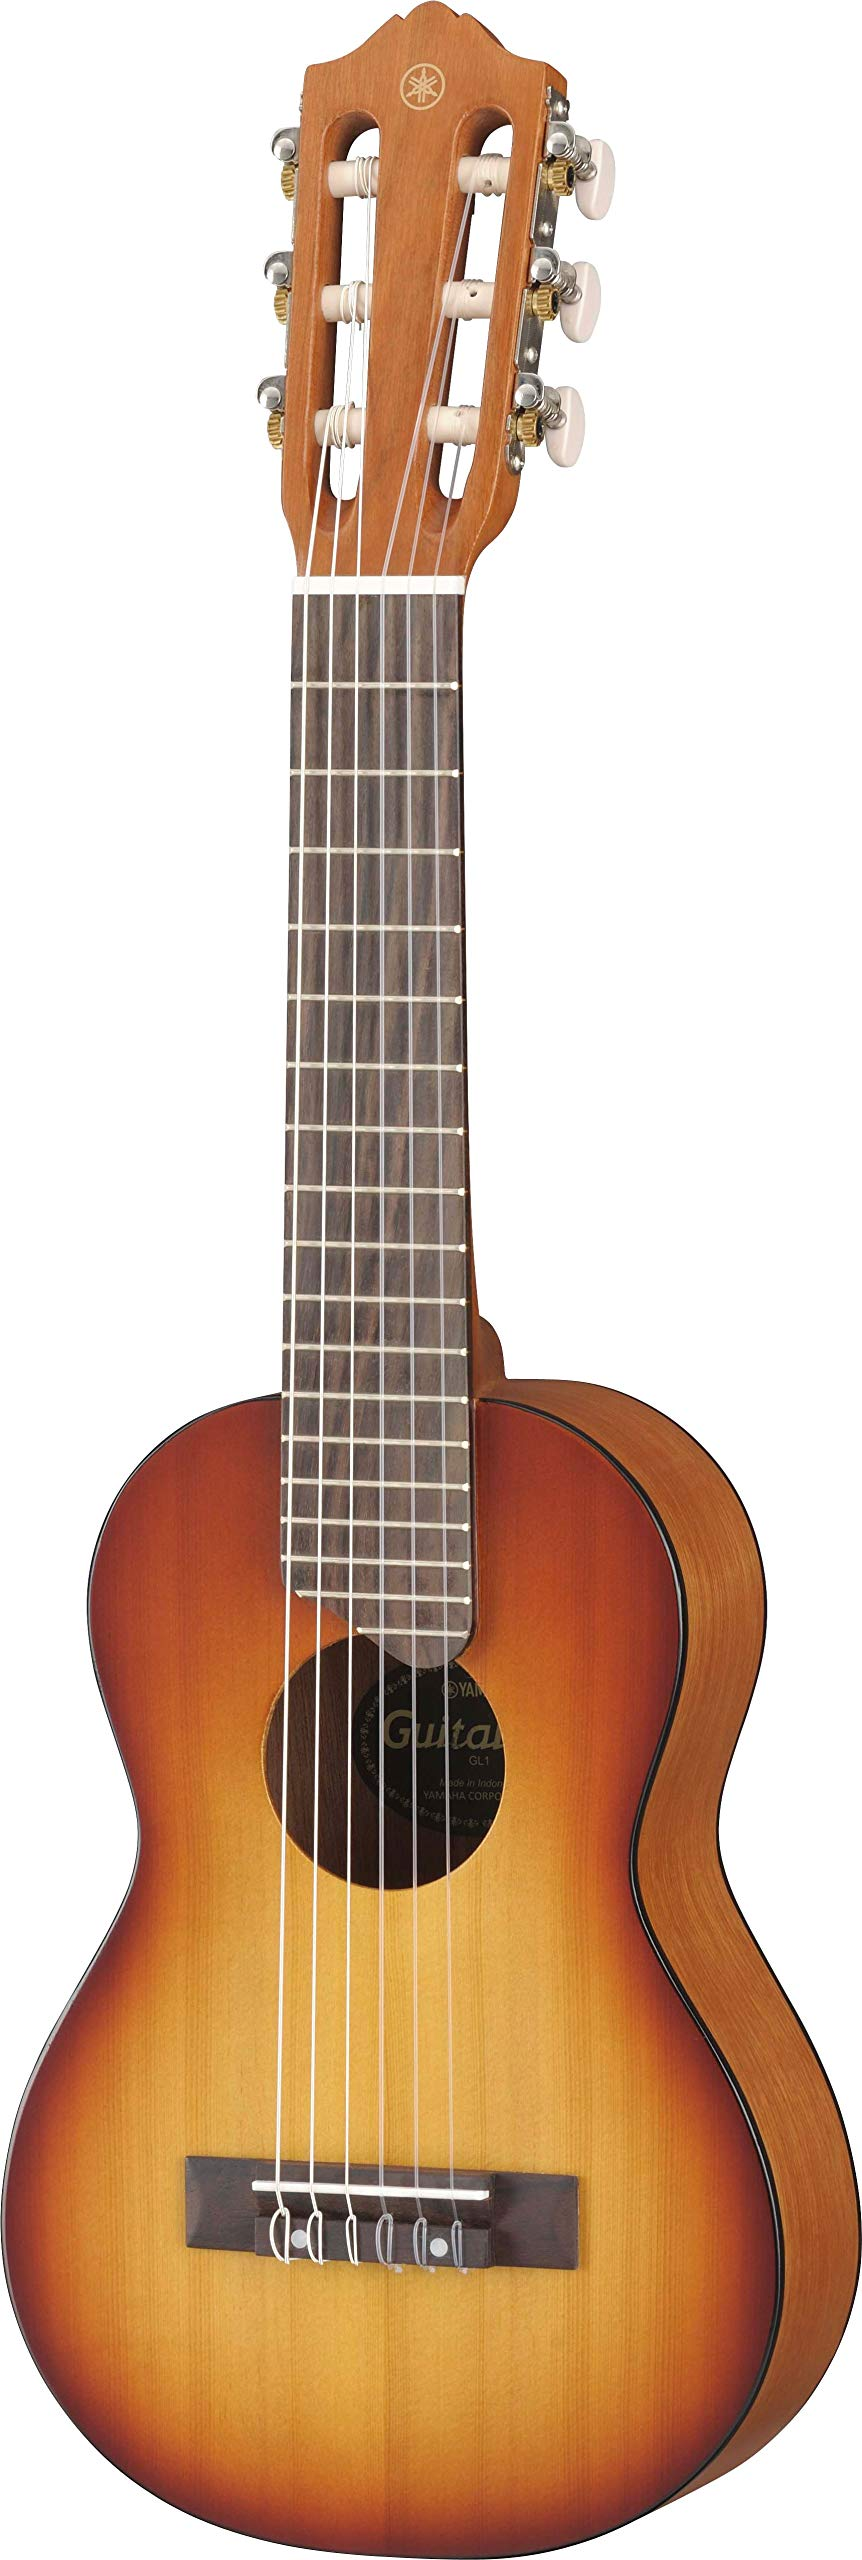 Yamaha GL Series GL1 TBS Guitalele, Tobacco Sunburst by YAMAHA